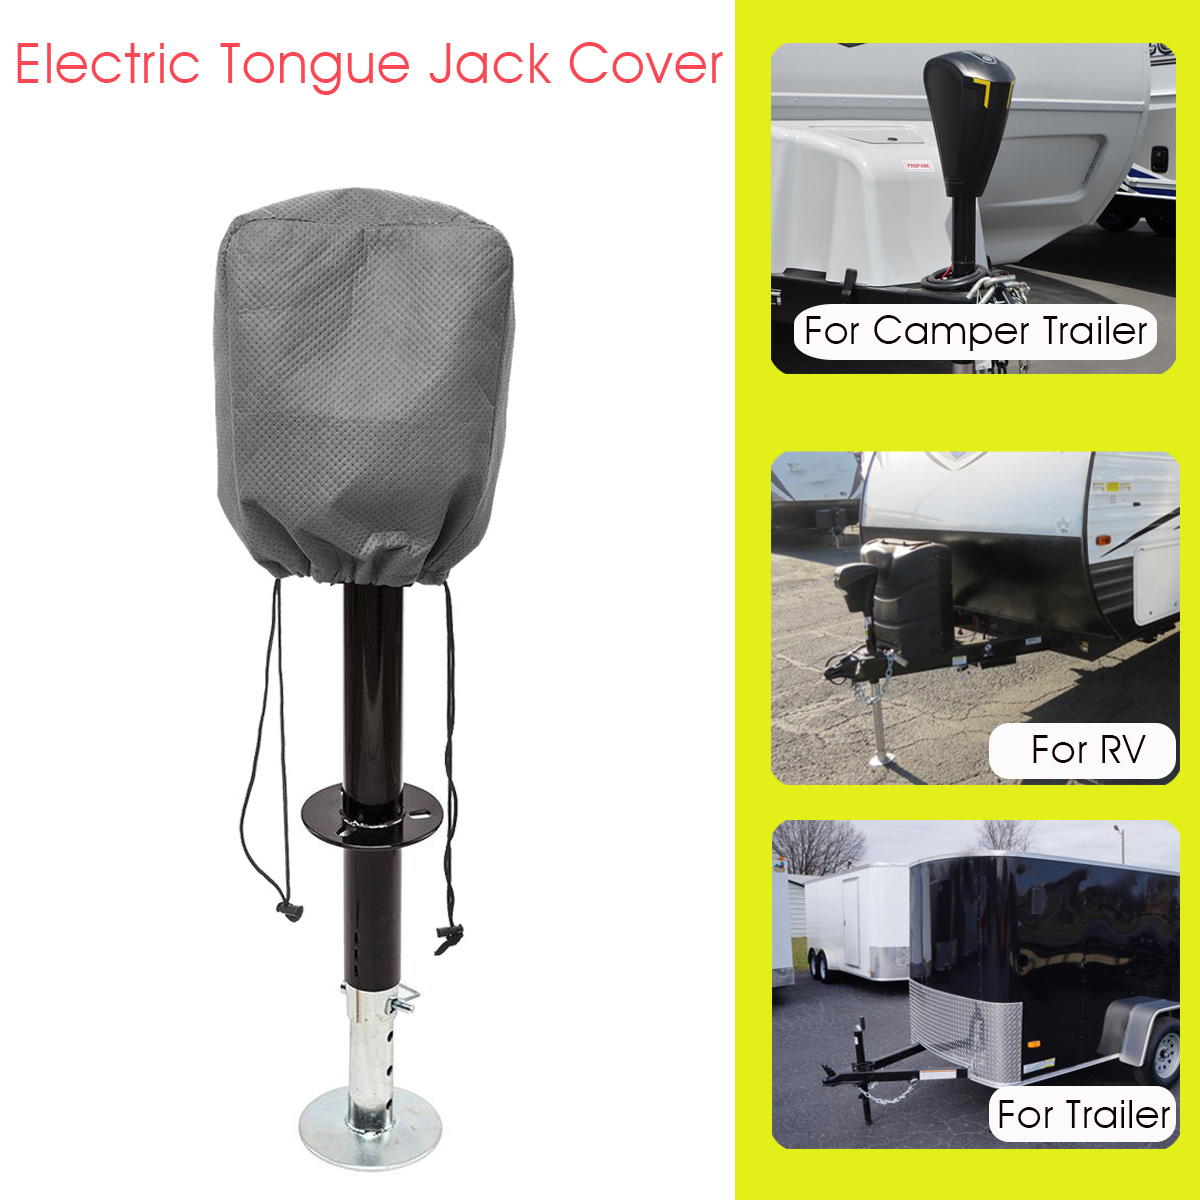 Universal RV Electric Tongue Jack Cover Protector Grey For Travel Motorhome Trailer For Camper Waterproof